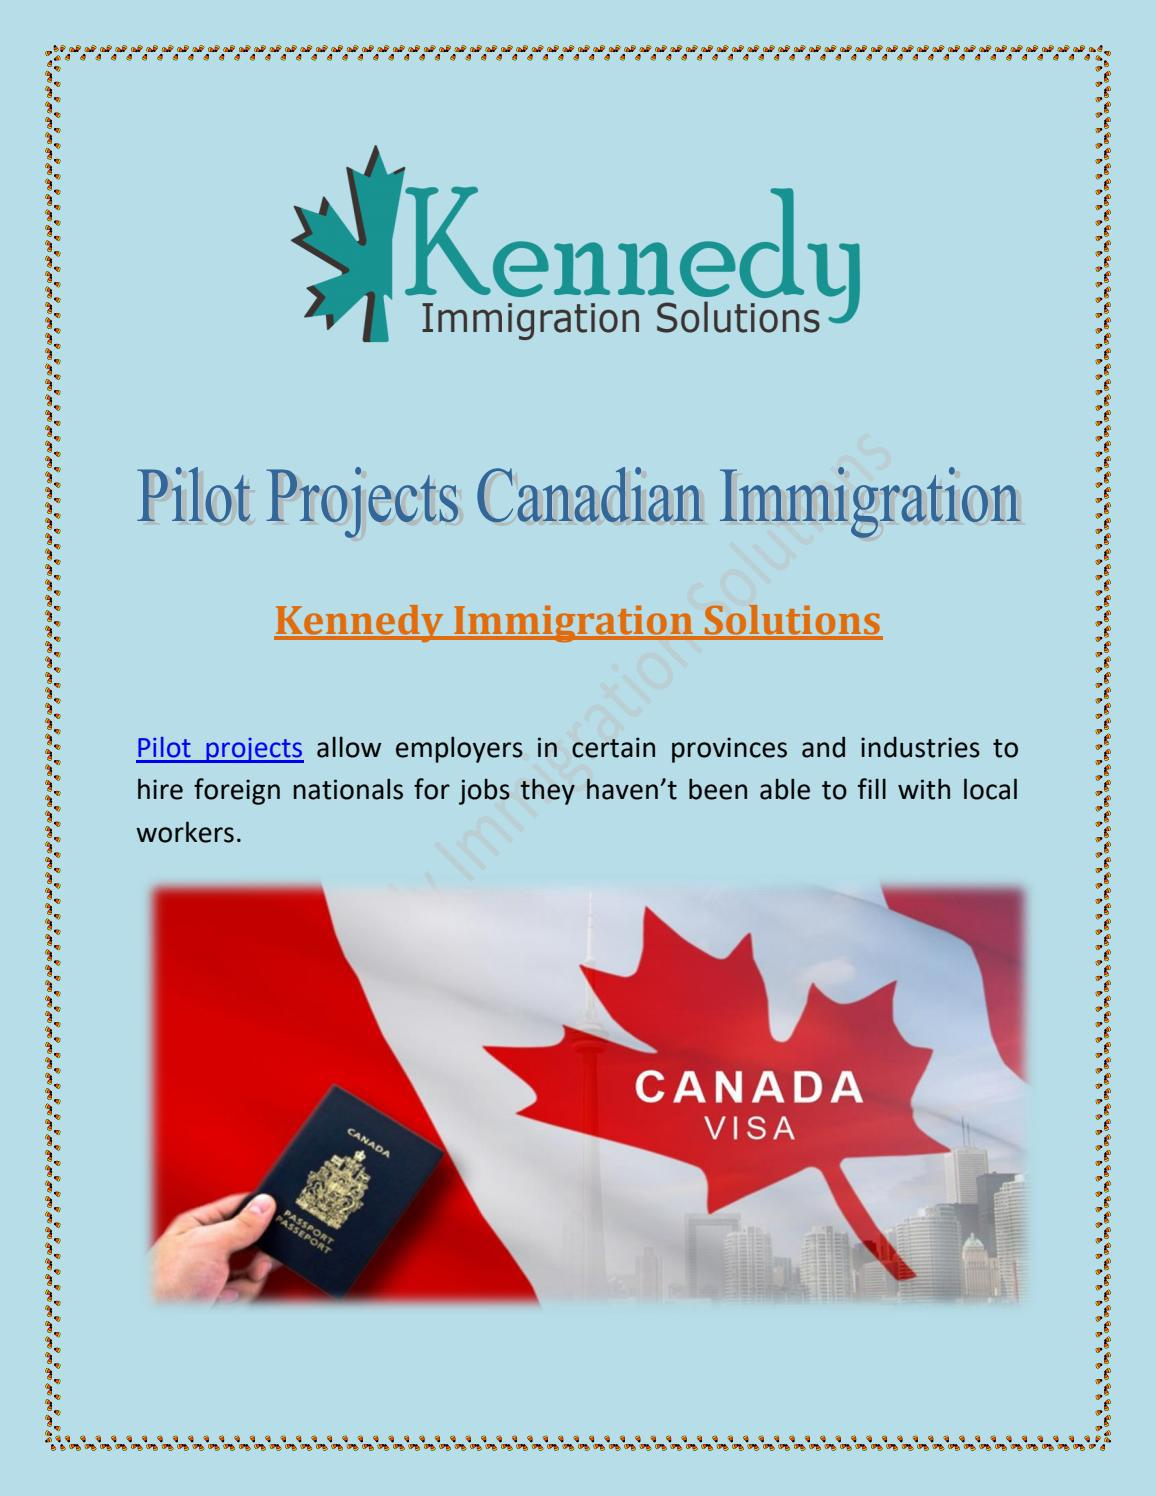 Pilot Projects Canadian Immigration - Kennedy Immigration